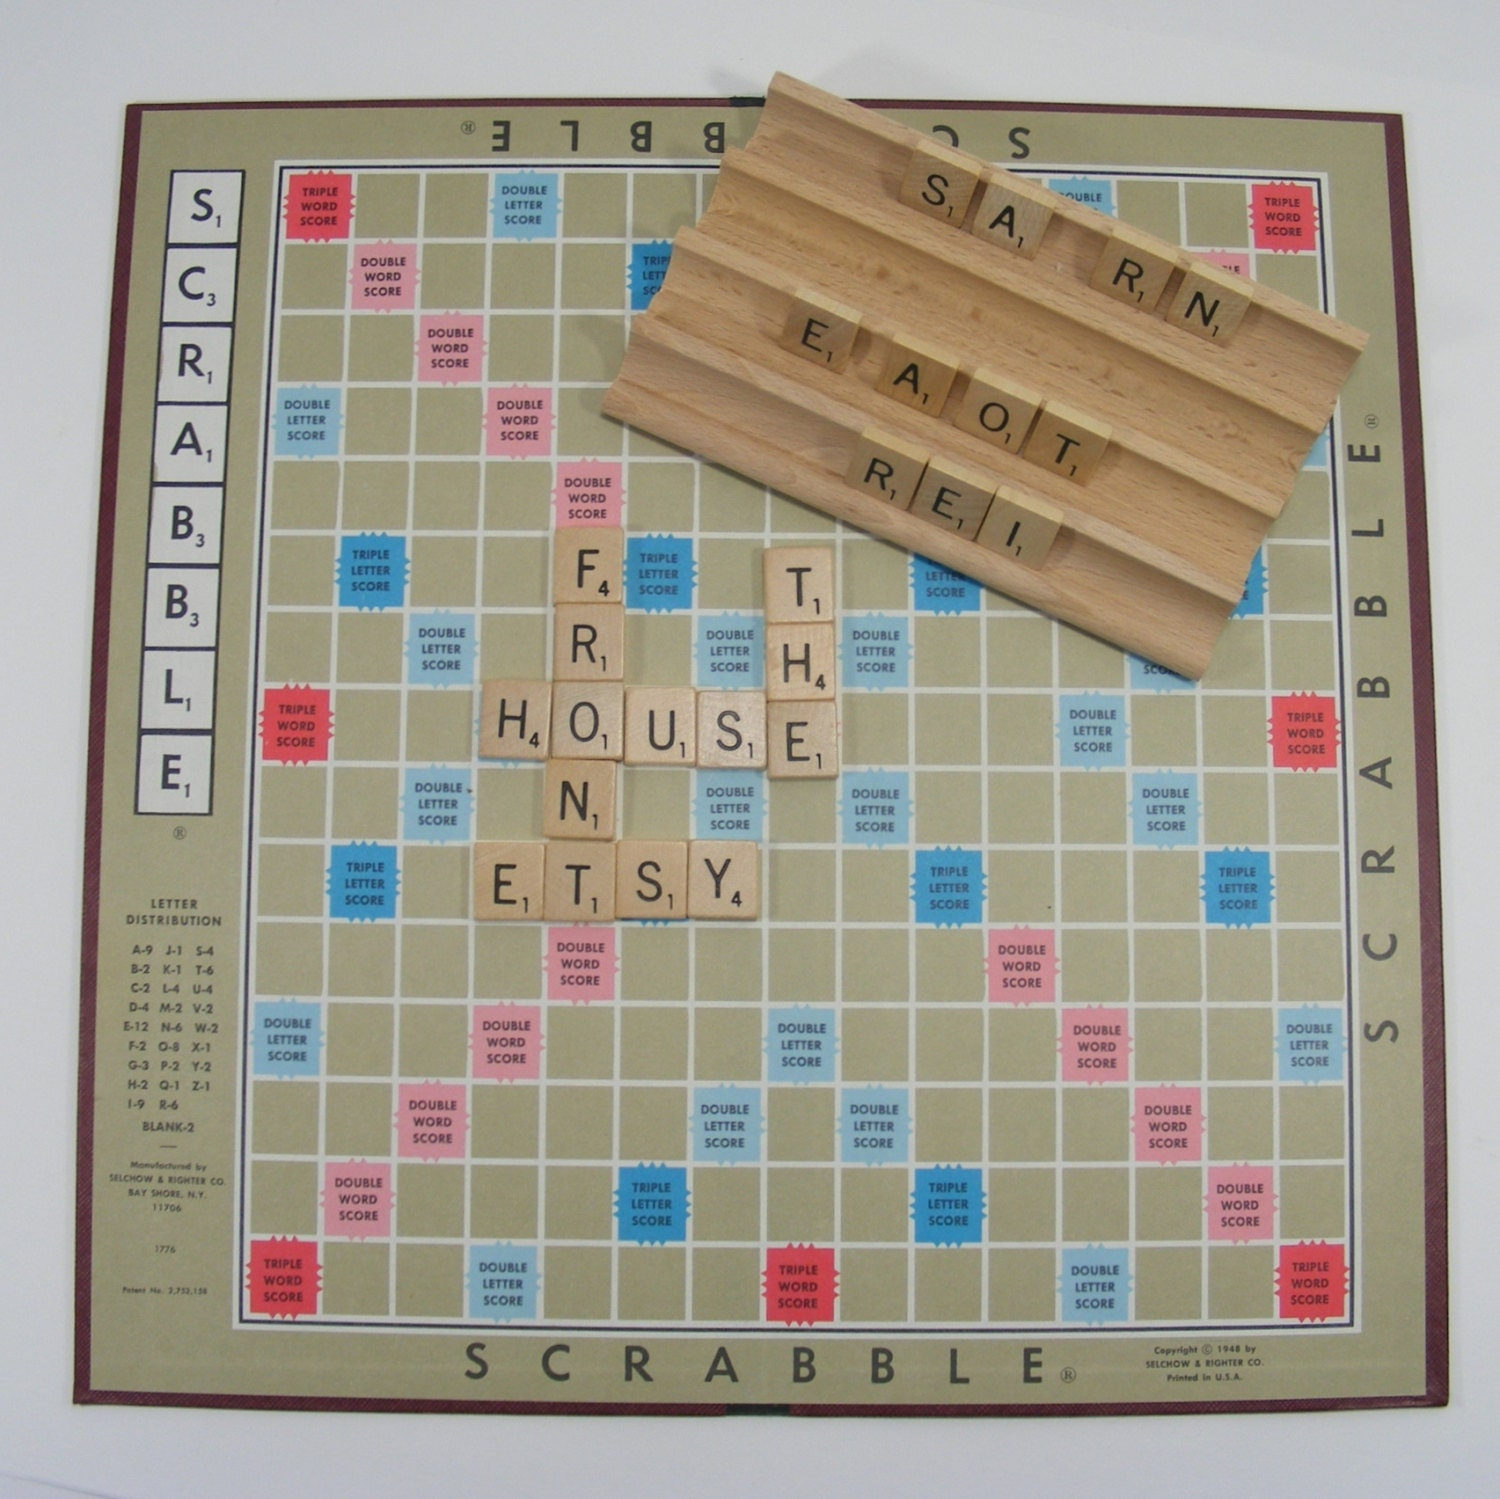 bo te de tuiles de plateau de jeu scrabble vintage 1976. Black Bedroom Furniture Sets. Home Design Ideas